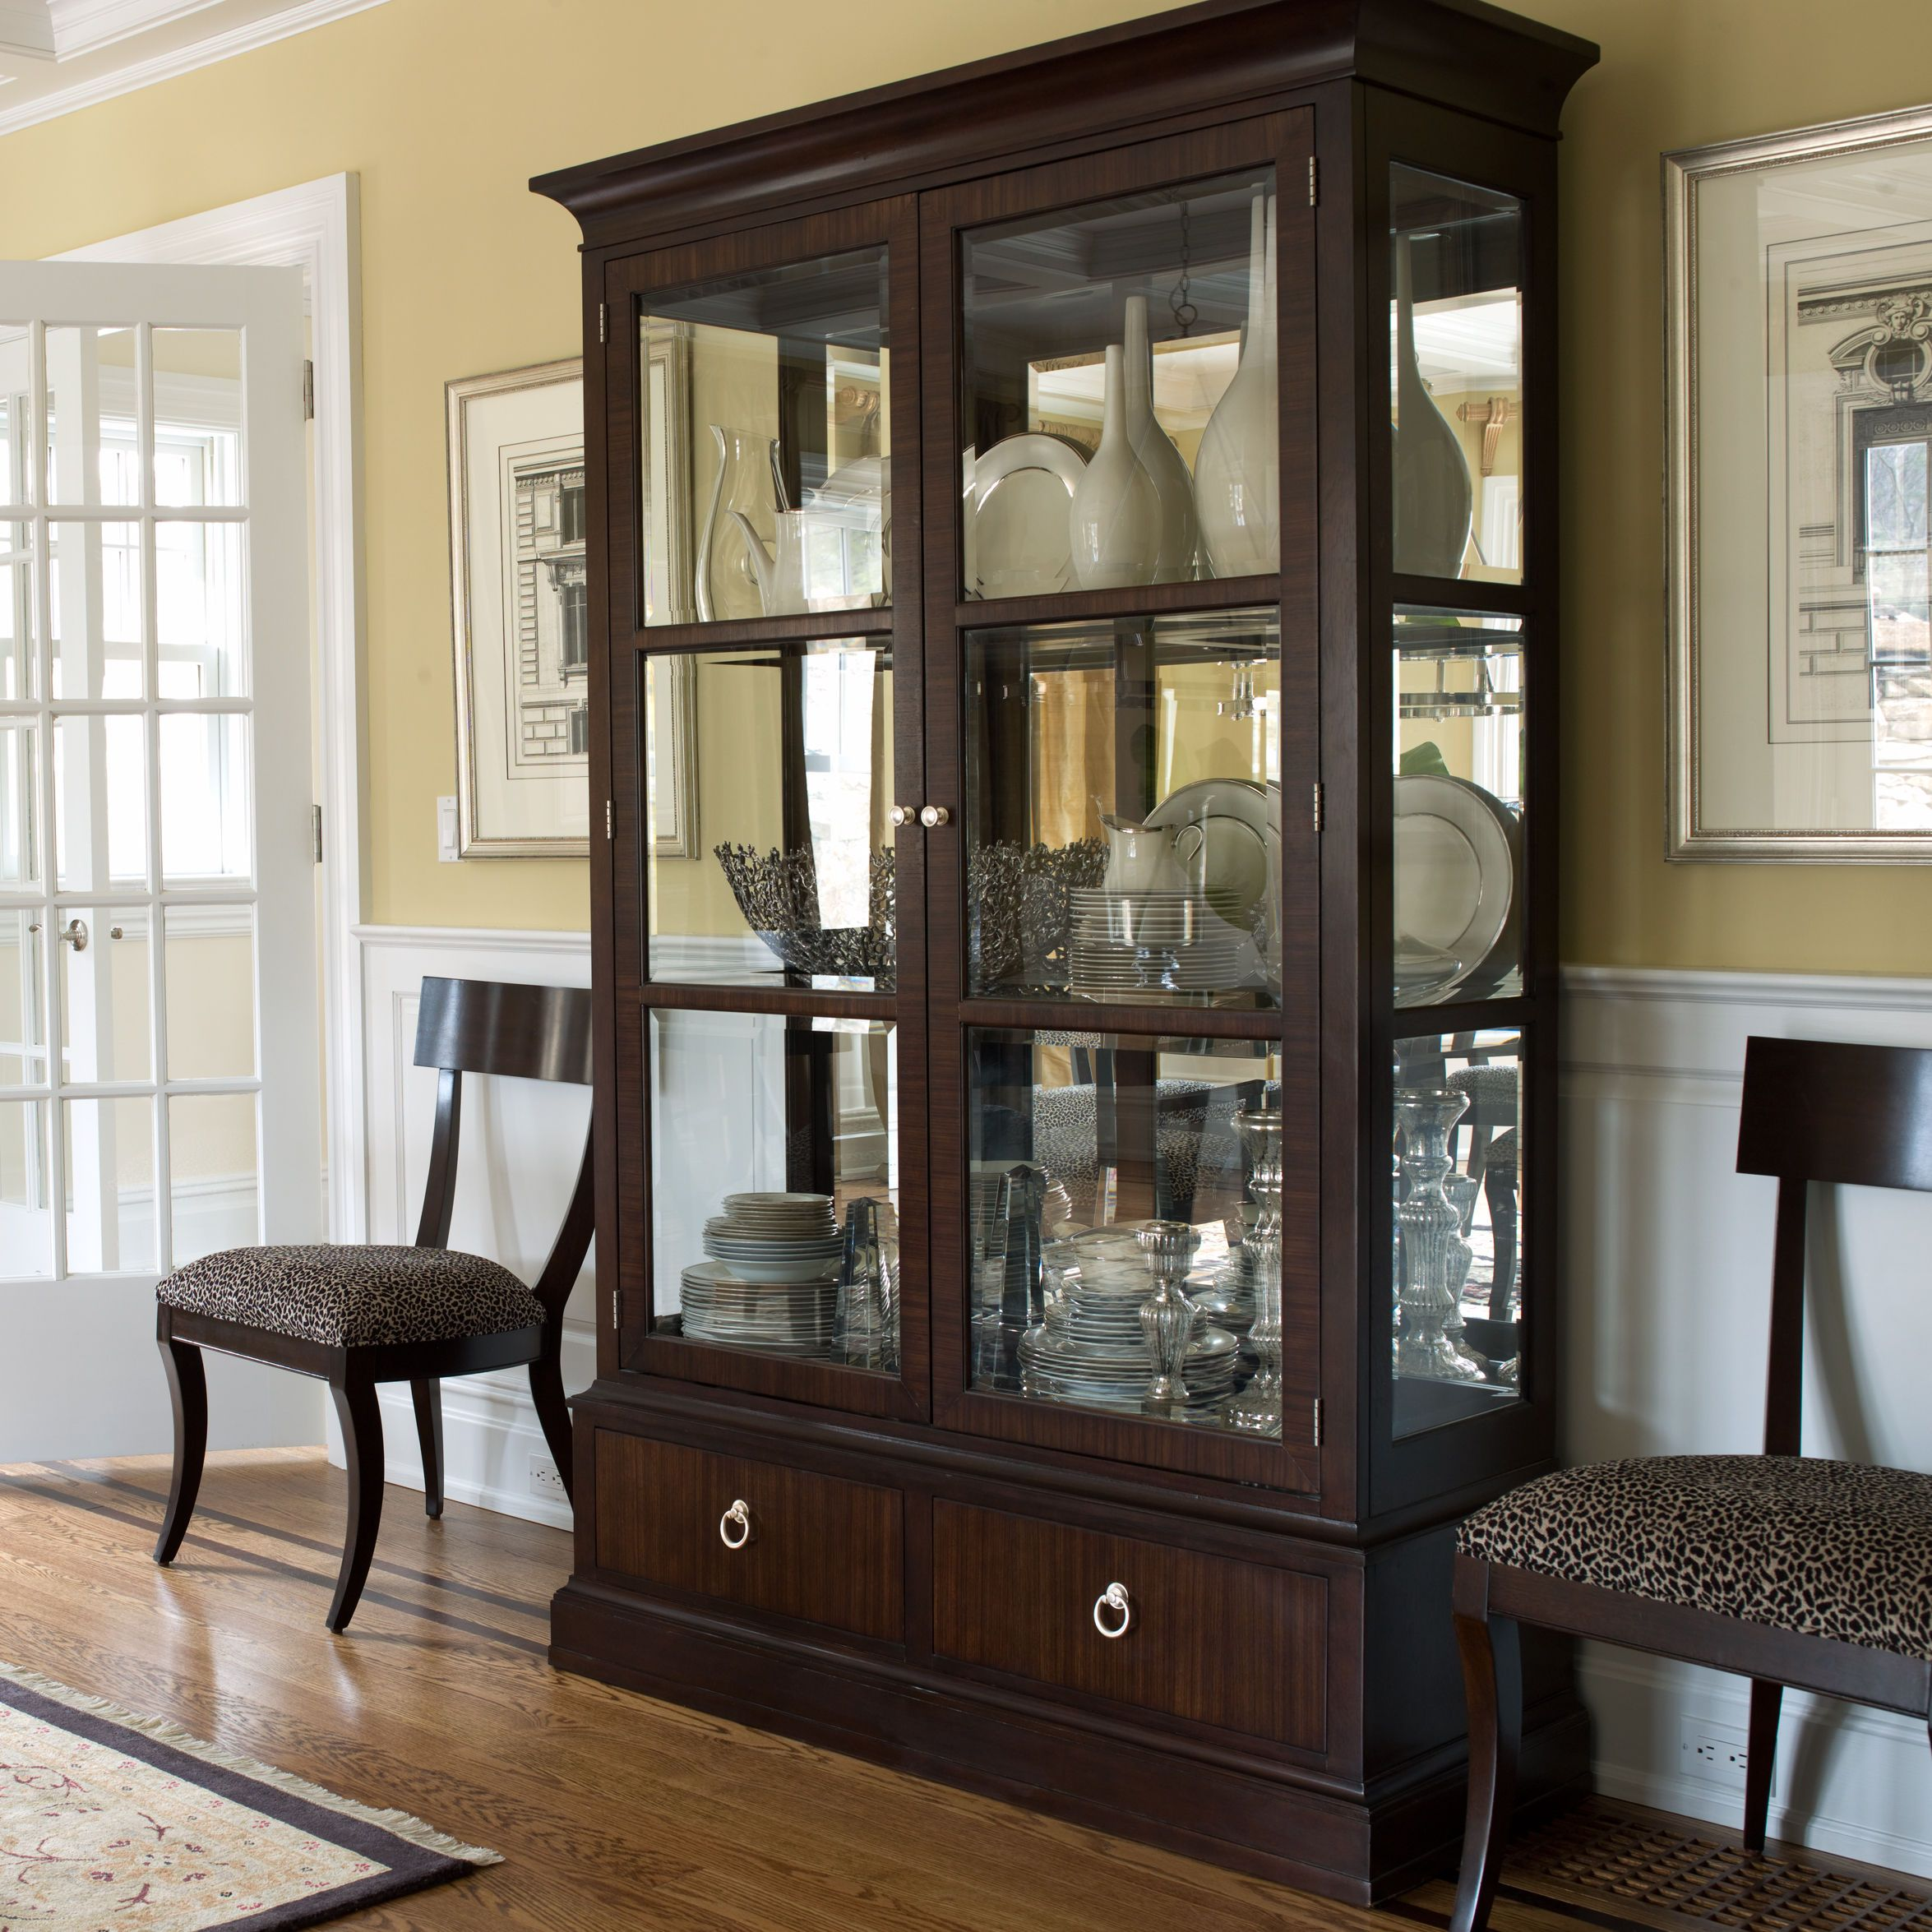 Modern Dining Room Cabinets: Brighton China Cabinet - Ethan Allen US